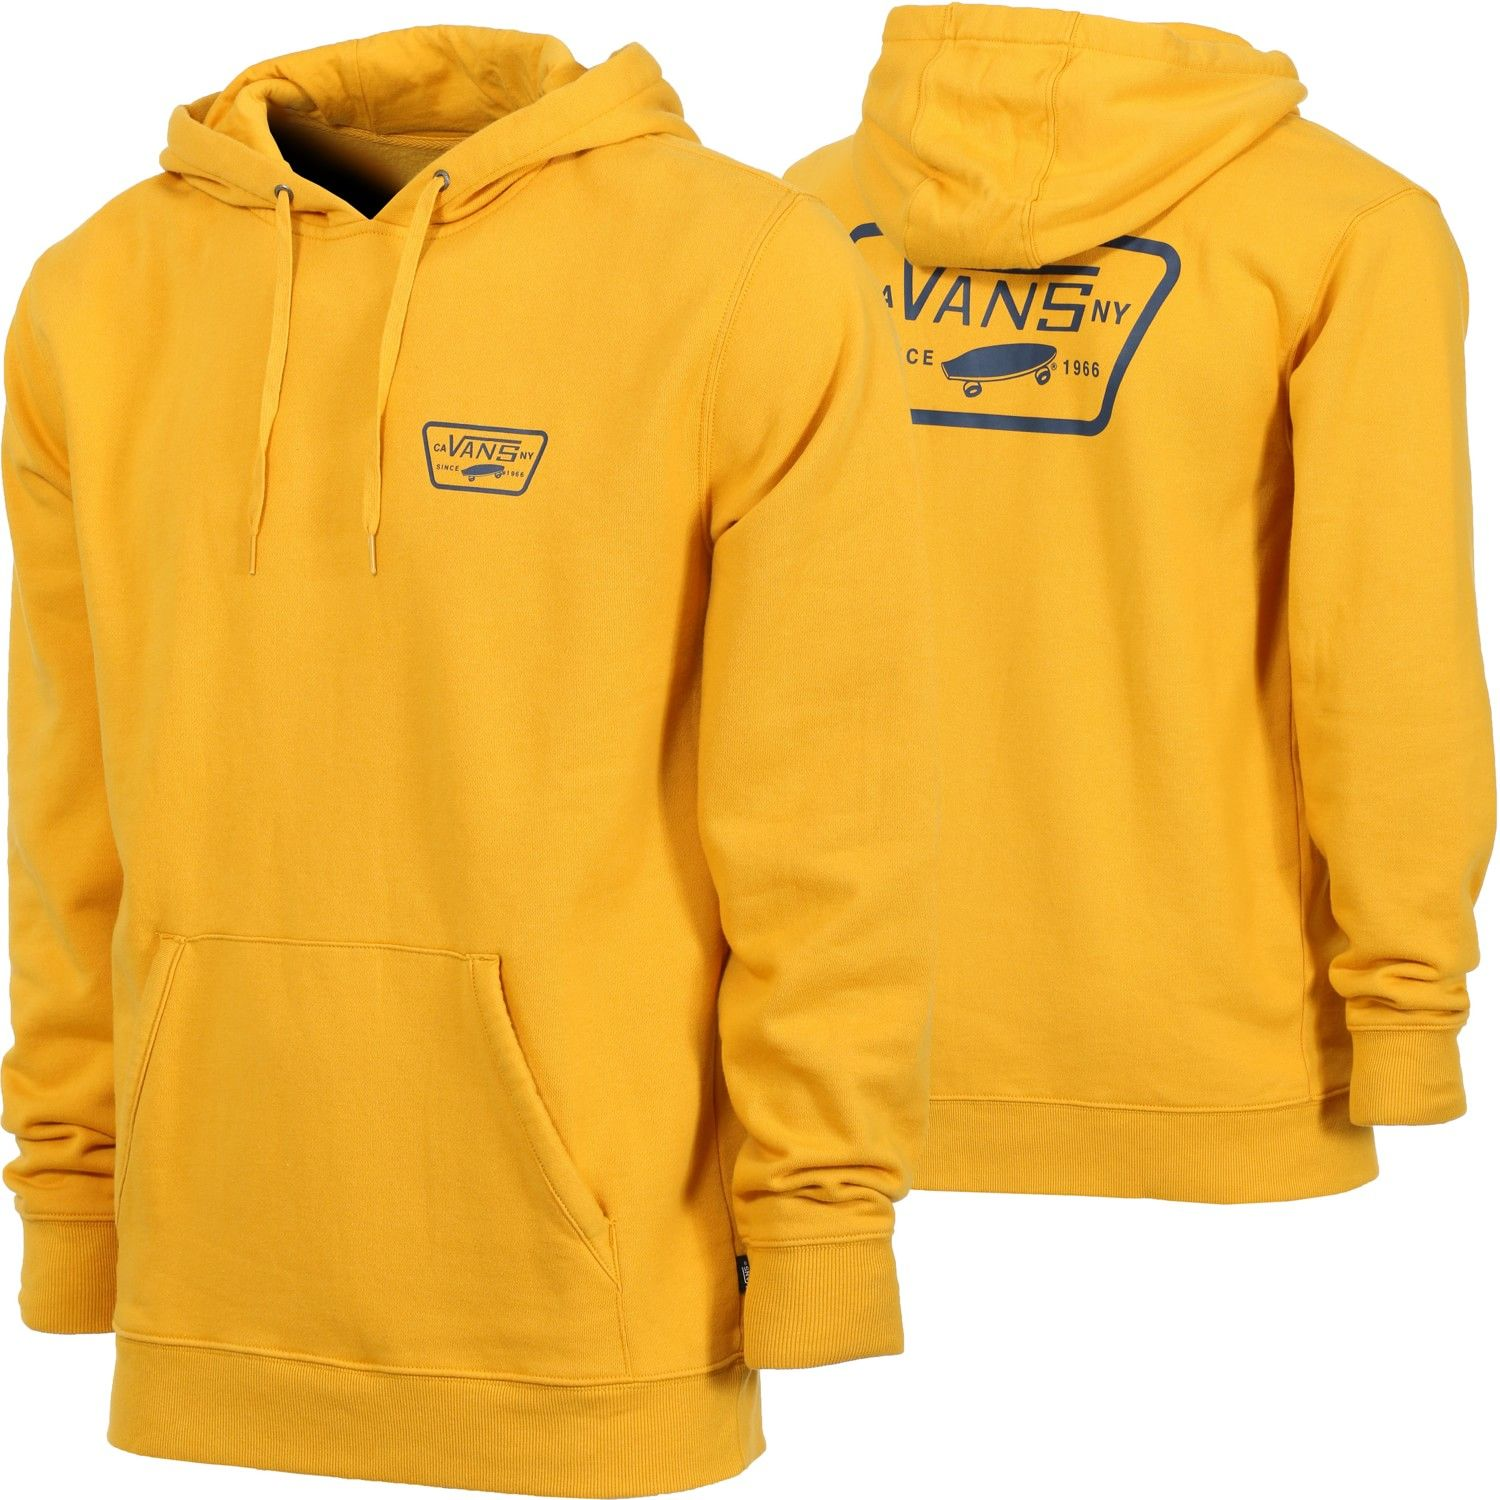 2fafe314953 Billedresultat for yellow vans hoodie